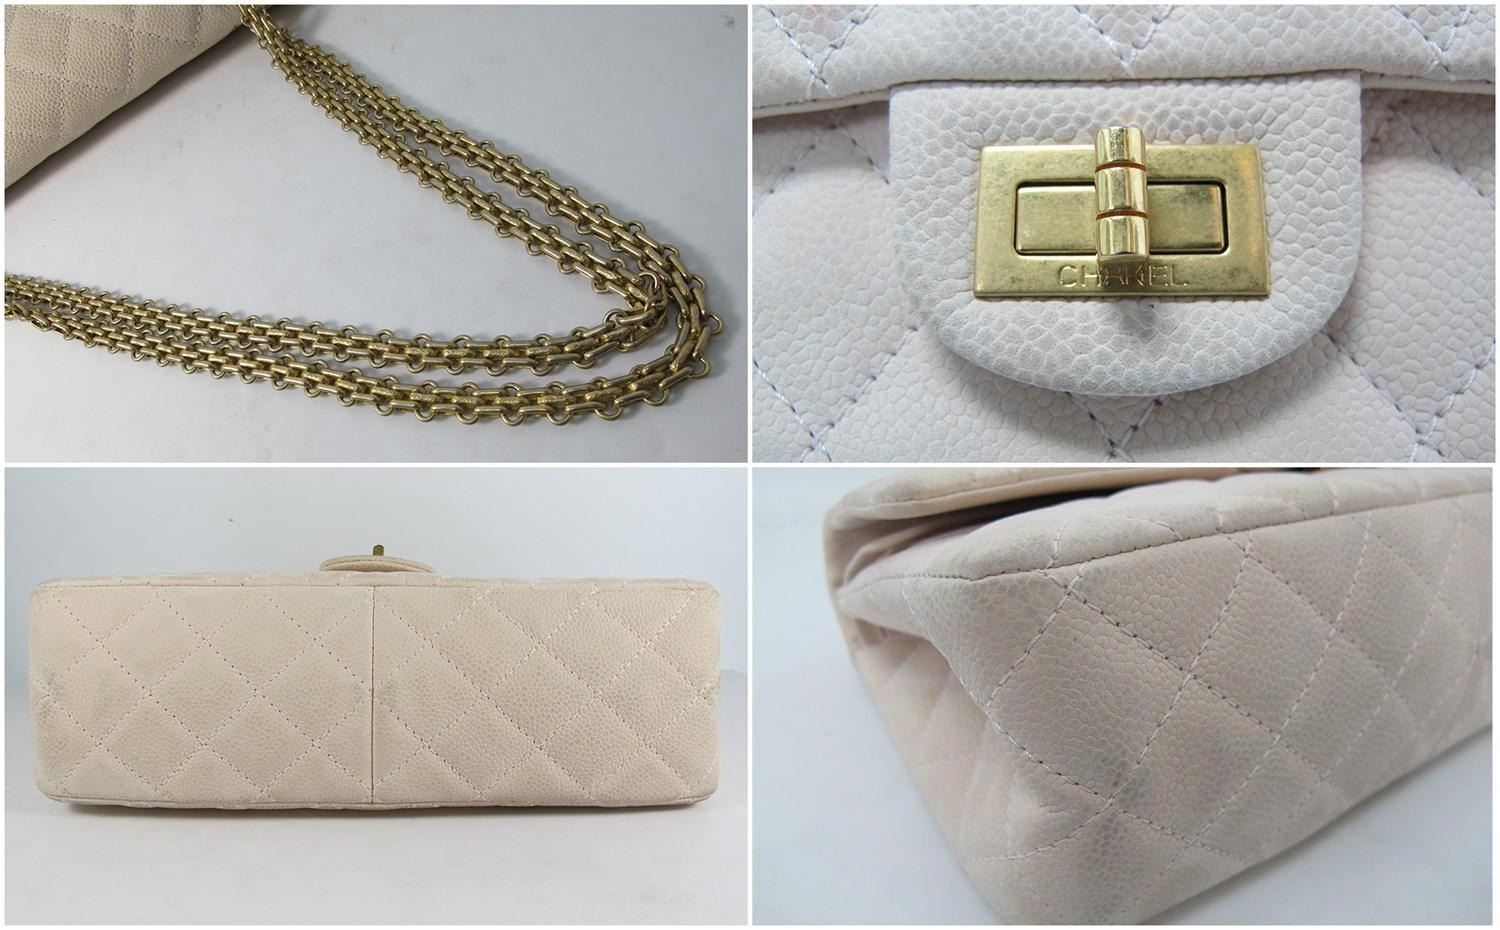 d4565c536366f2 Chanel 2.55 Reissue Quilted Classic Suede Caviar Leather 226 Flap ...